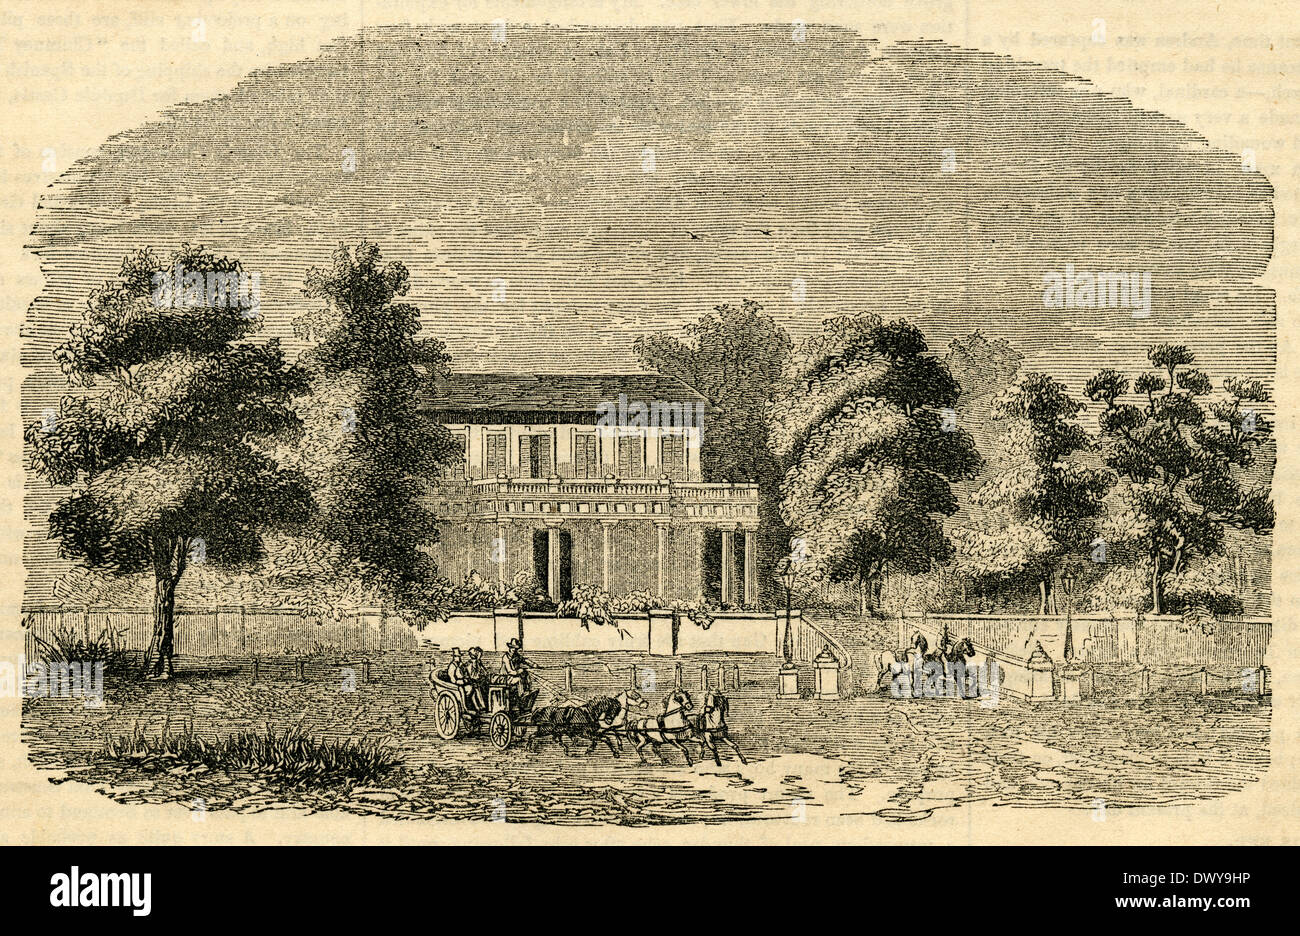 1854 engraving, House of the Dutch Resident at Sourabaya in Java, Indonesia. - Stock Image